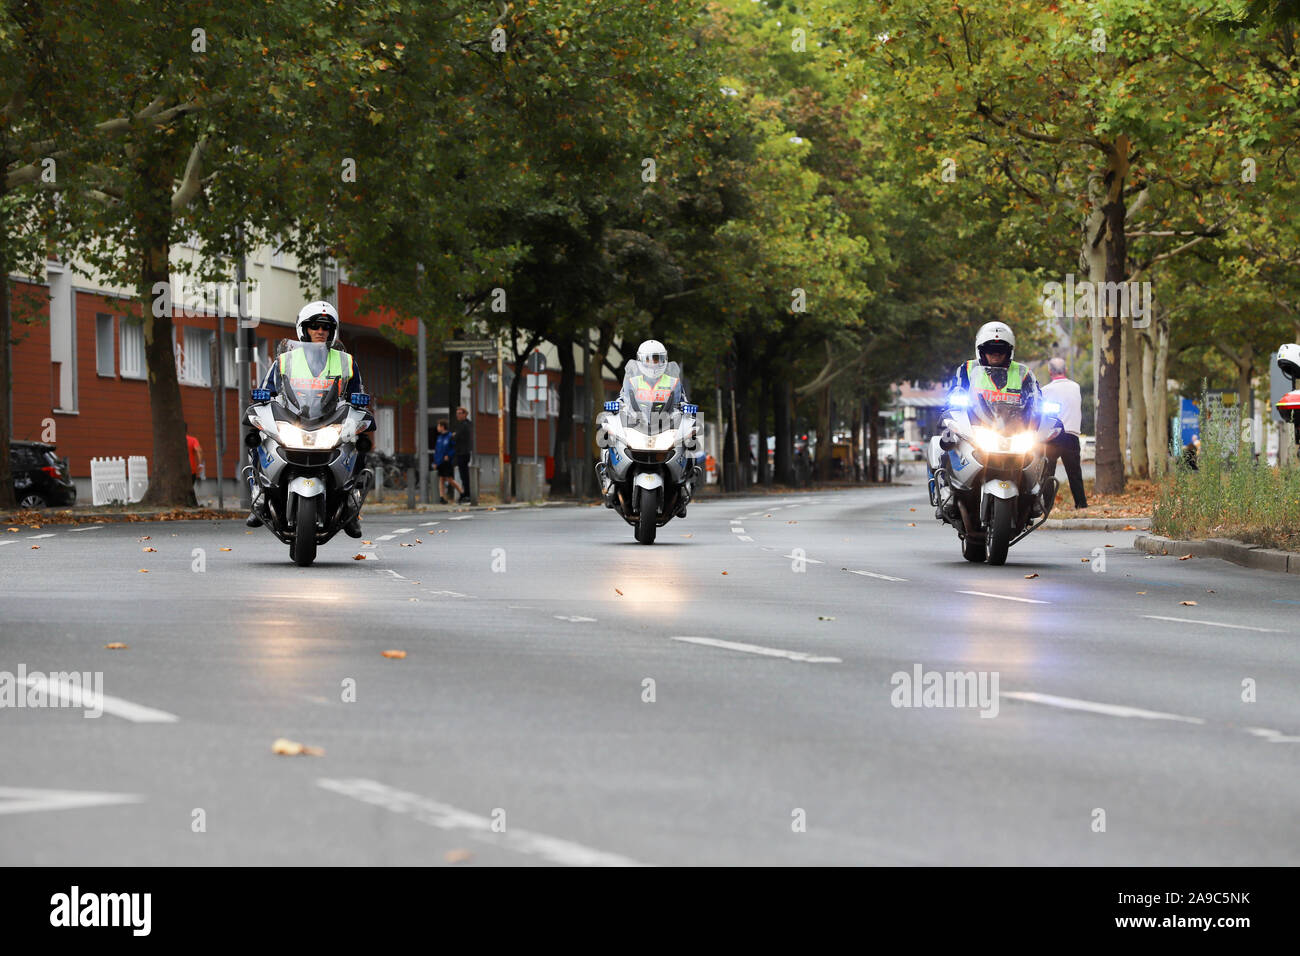 Berlin, Berlin / Germany, September 15, 2018. Berlin police officers on motorcycles securing the Inline Scater race as part of the Berlin Marathon. Stock Photo